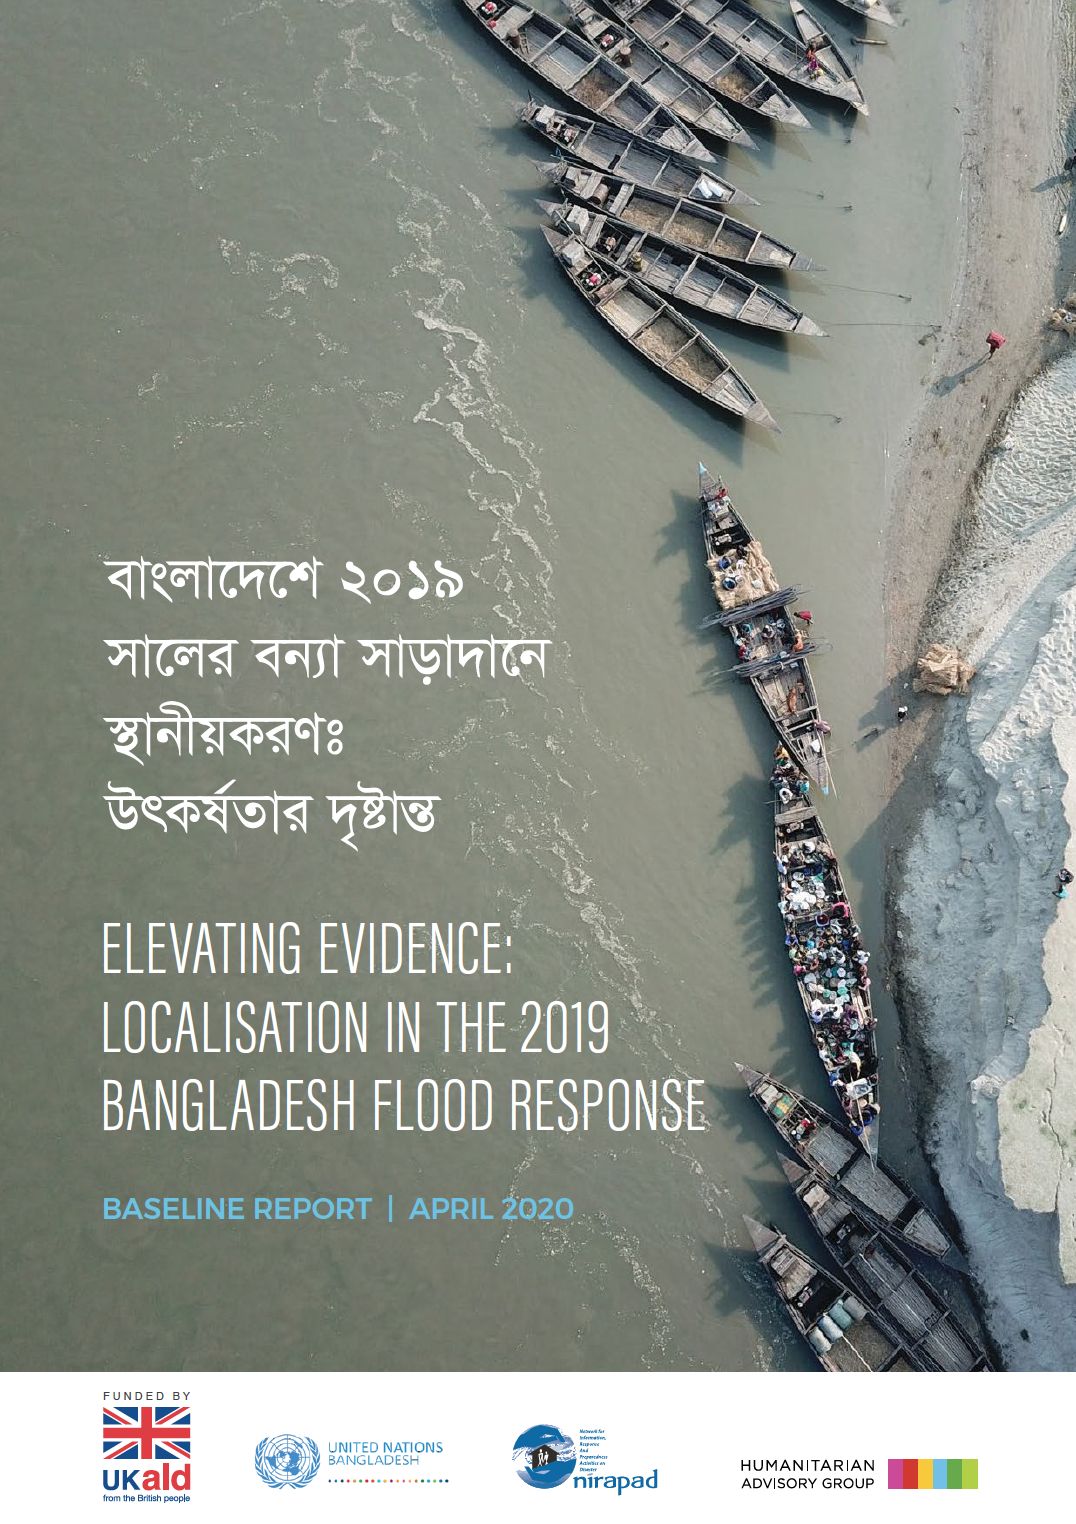 Elevating Evidence: Localisation in the 2019 Bangladesh Flood Response